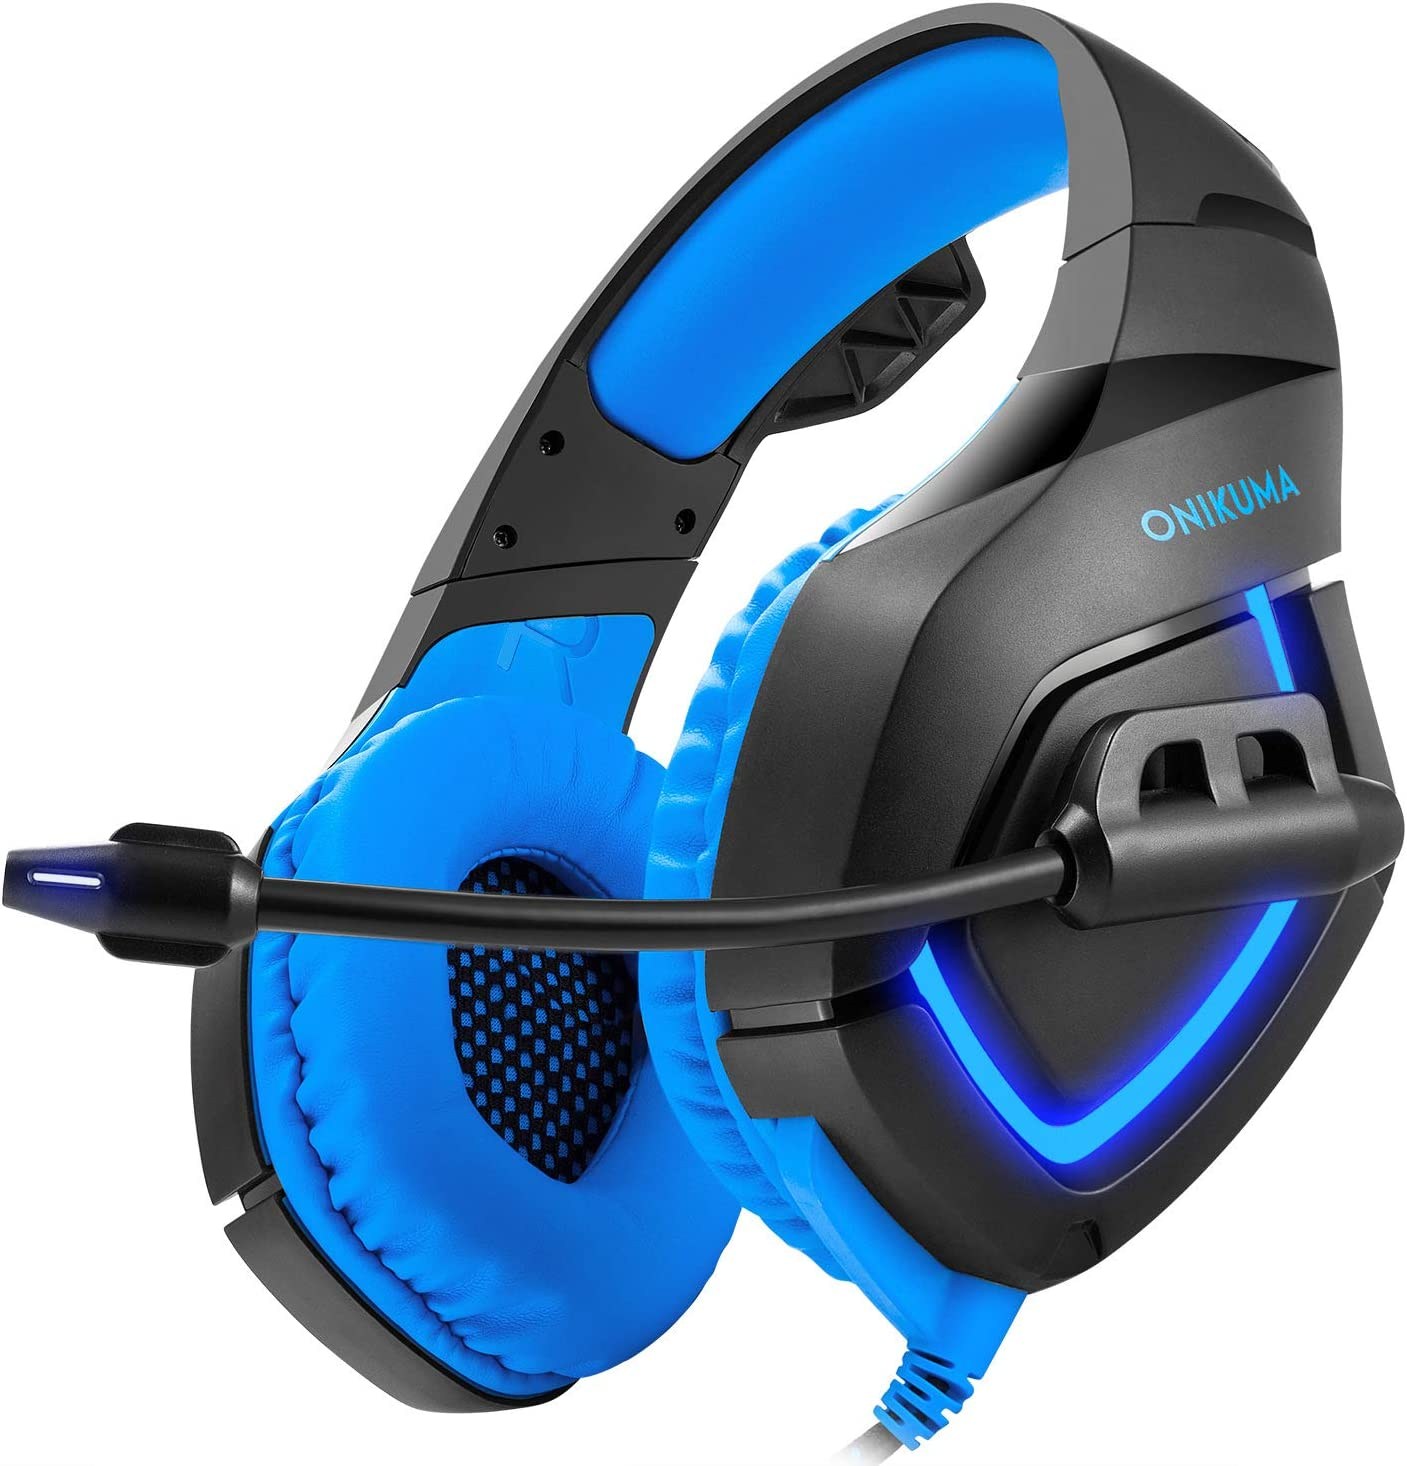 LOLOP Gaming Headset Headset Computer E-Sports Headphones Glowing Headphones,Red